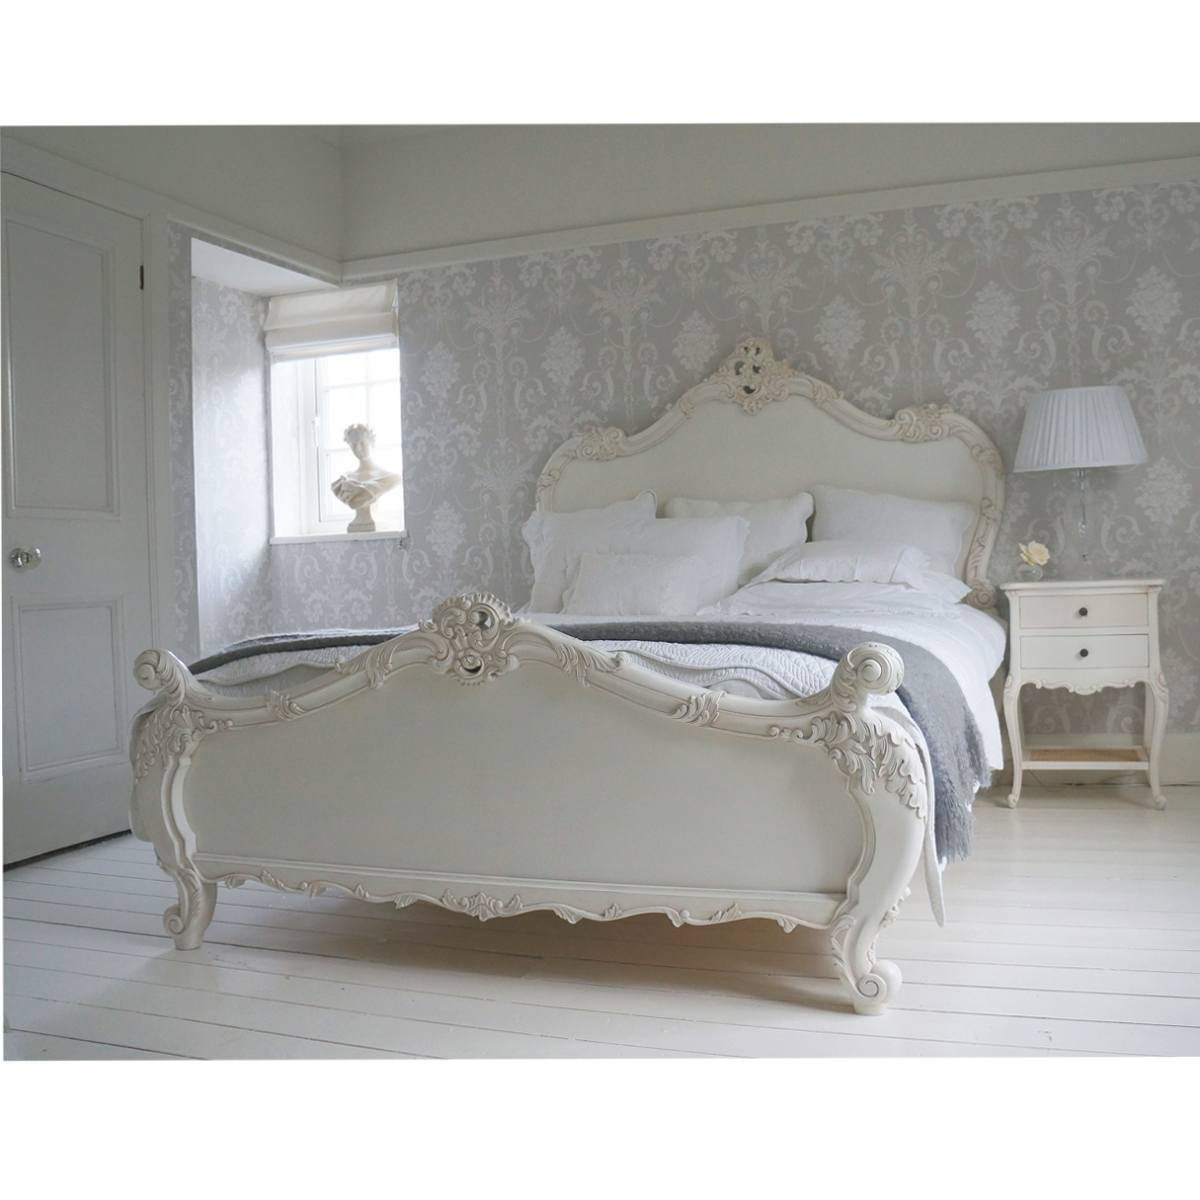 Provencal sassy white french bed french bedroom company Bedrooms furniture